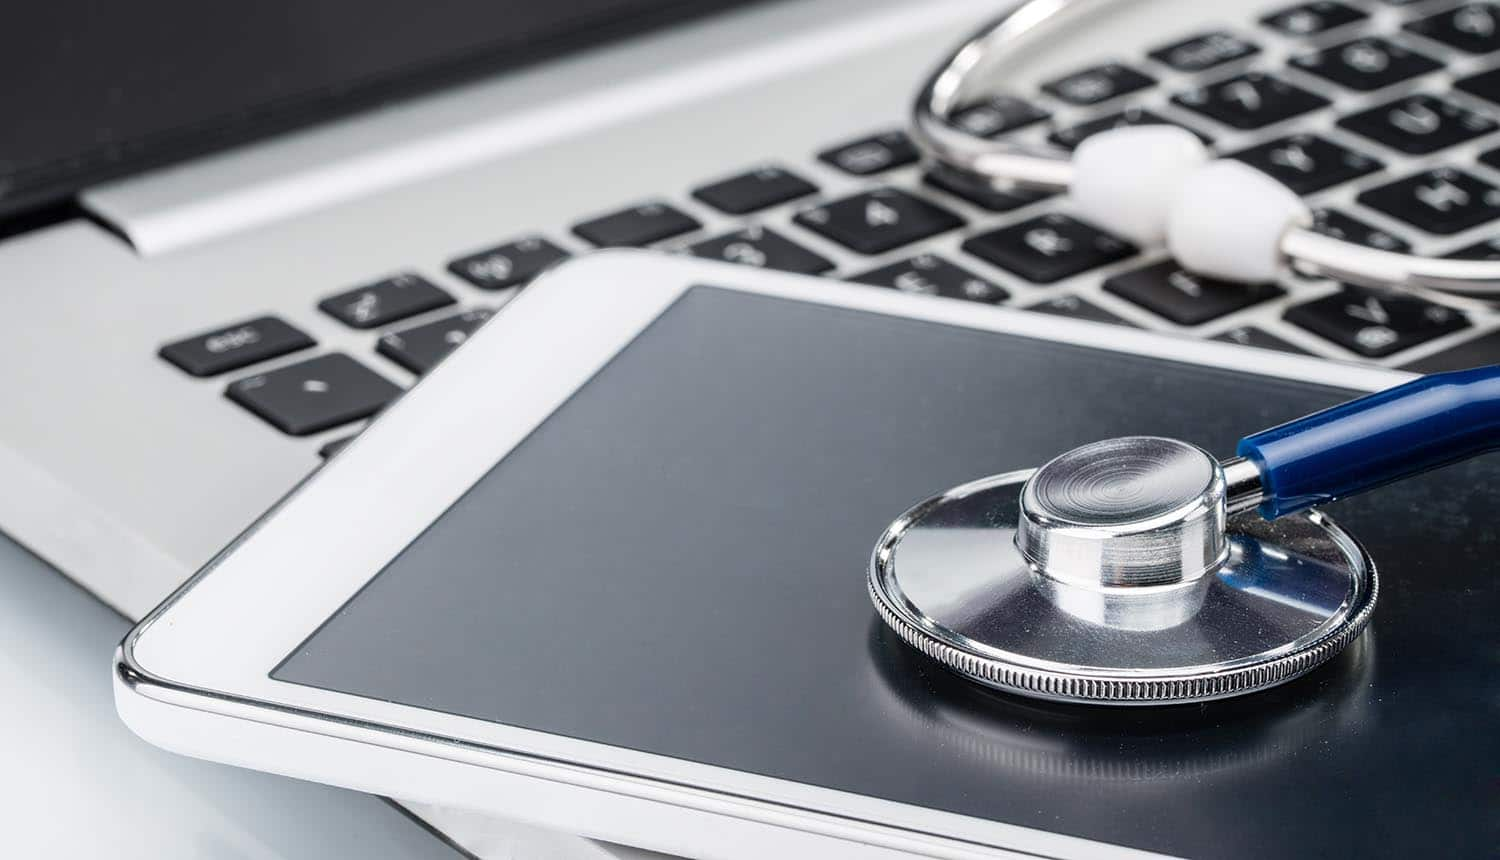 Stethoscope on tablet and laptop keyboard showing need to focus on hardware security risks